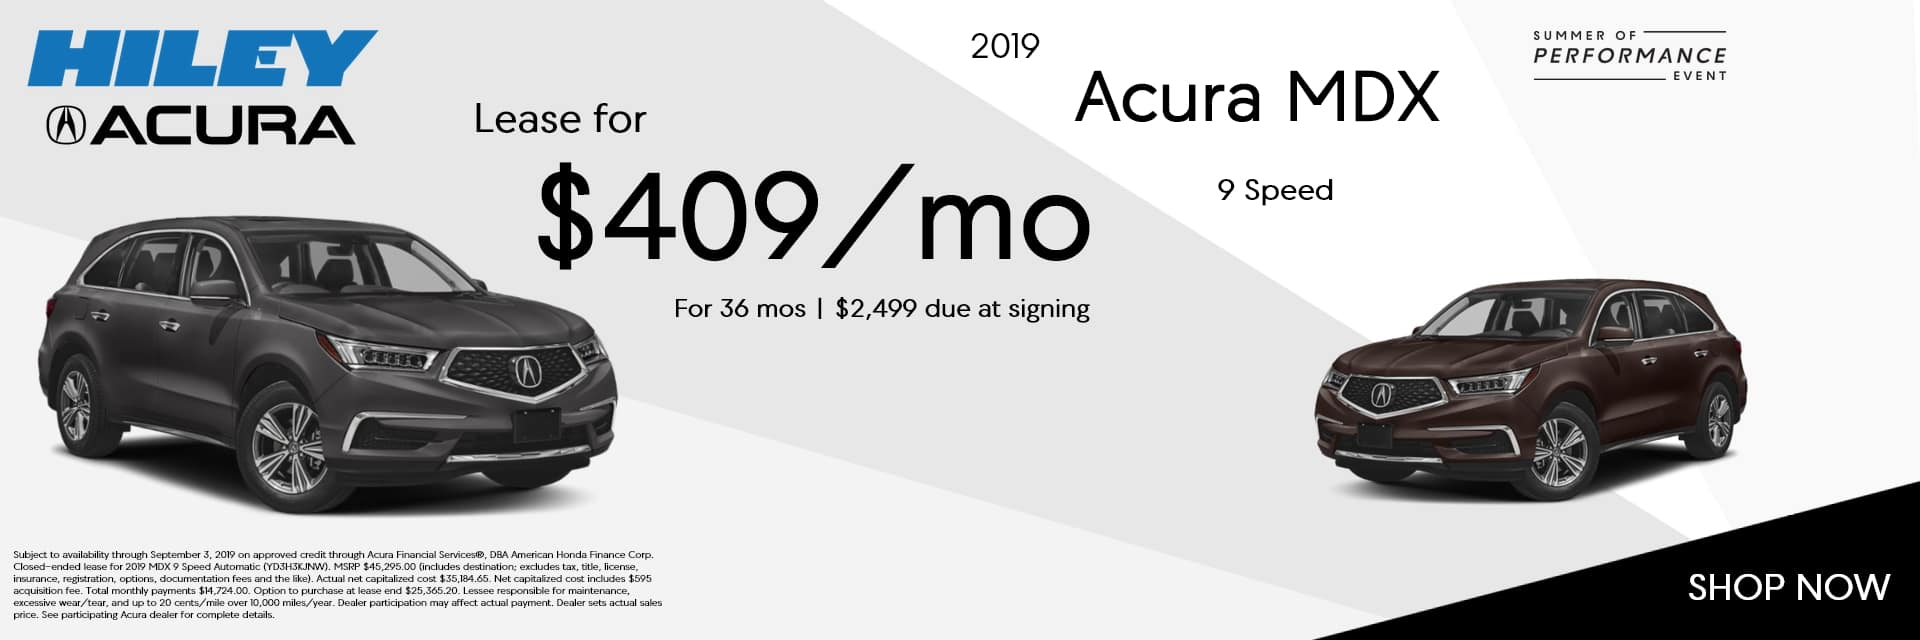 Acura Fort Worth >> New And Used Acura Hiley Acura Of Fort Worth Near Arlington Tx